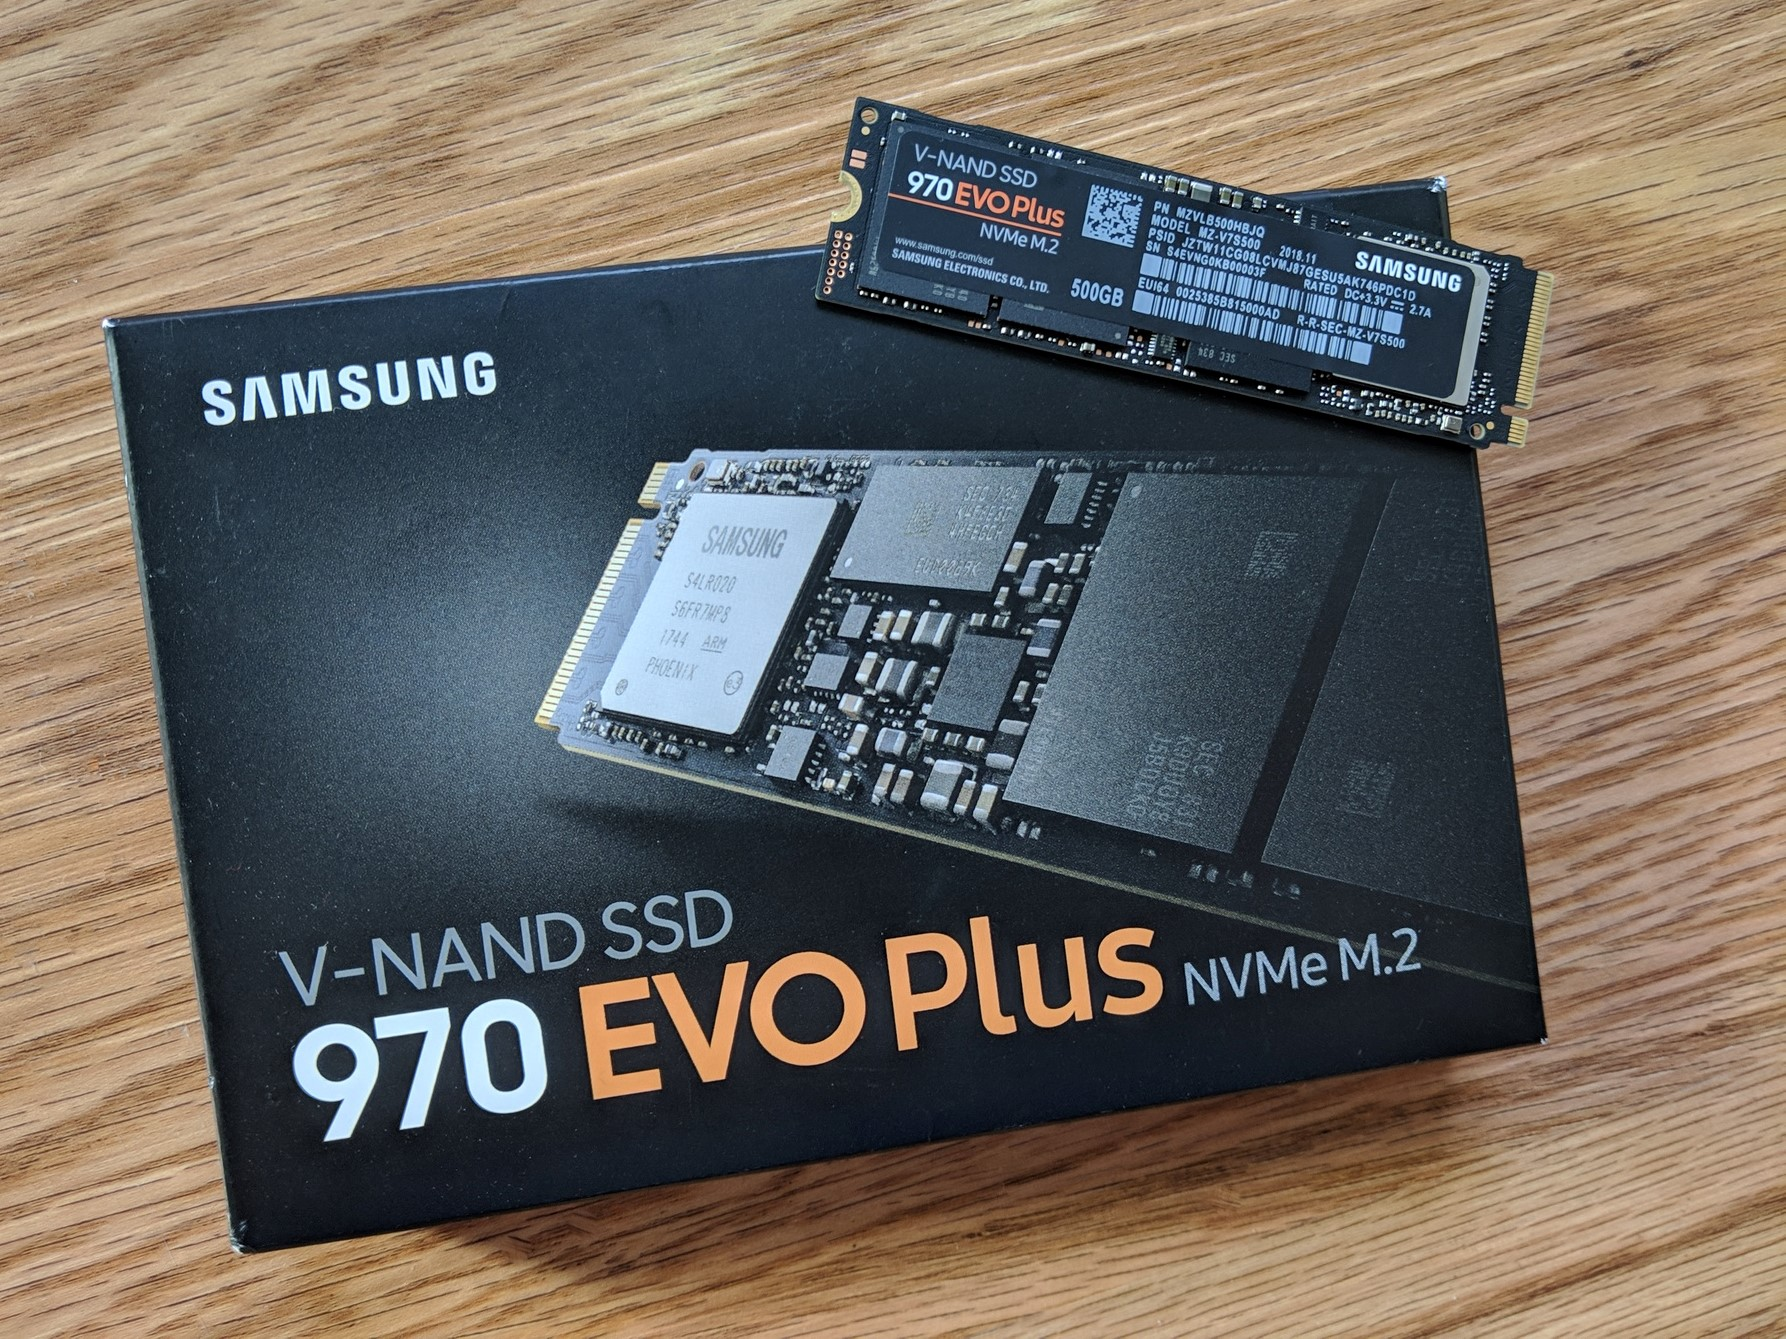 Samsung 970 EVO Plus NVMe SSD Review - Dong Knows Tech